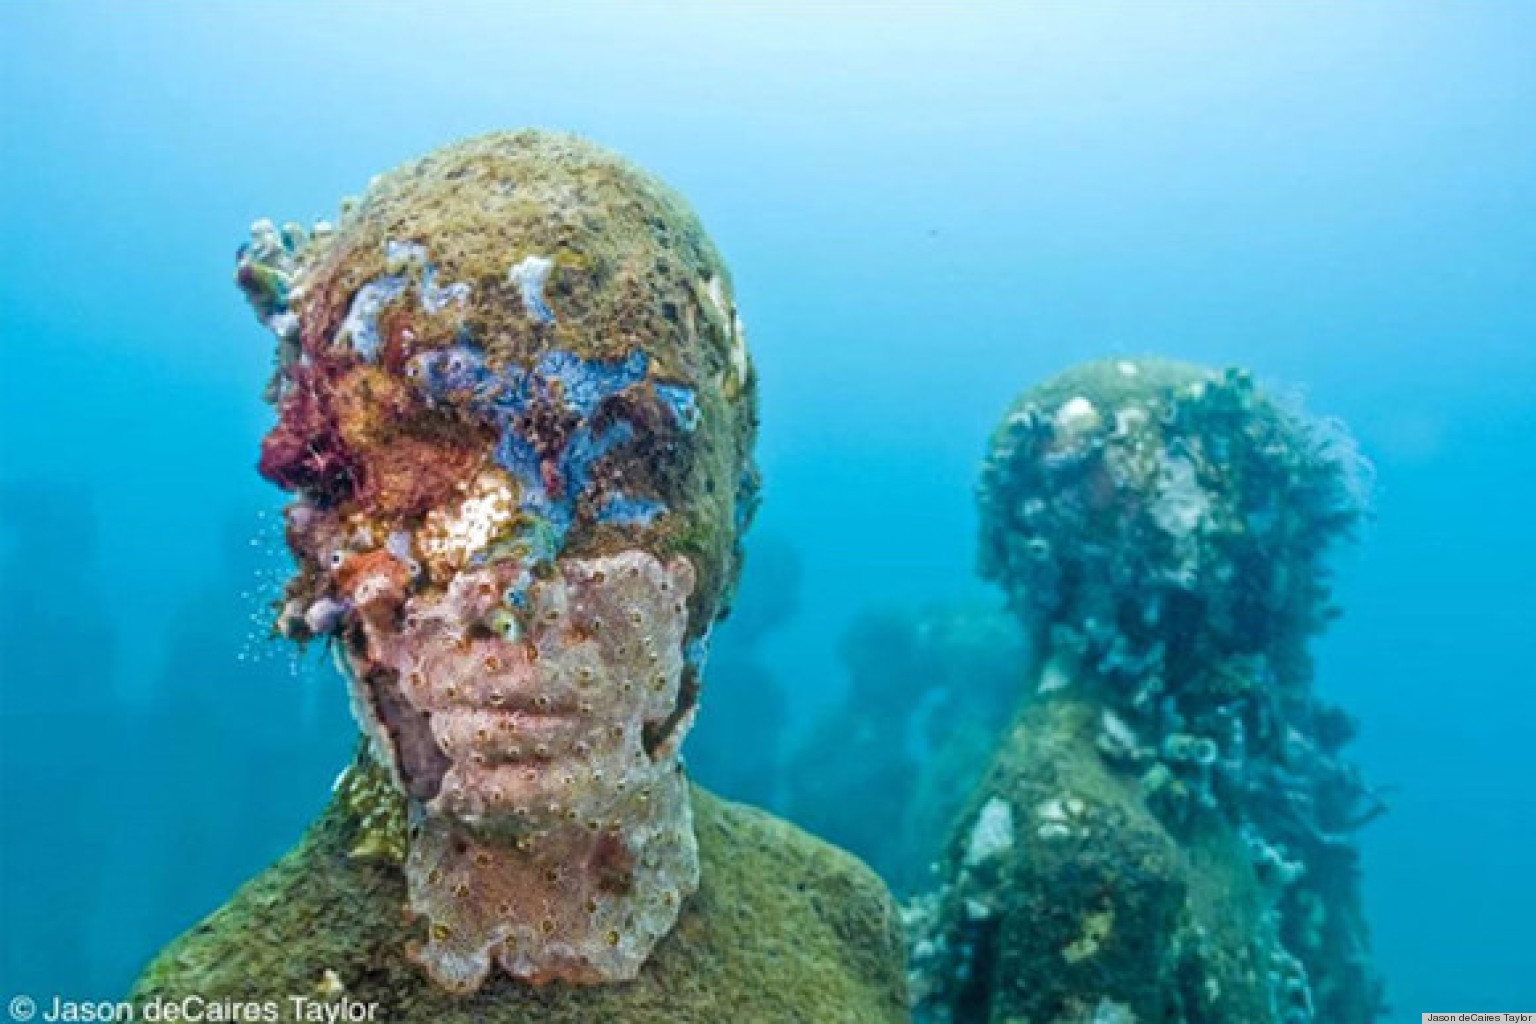 Jason decaires taylor 39 s underwater art installation takes for Another word for ocean floor